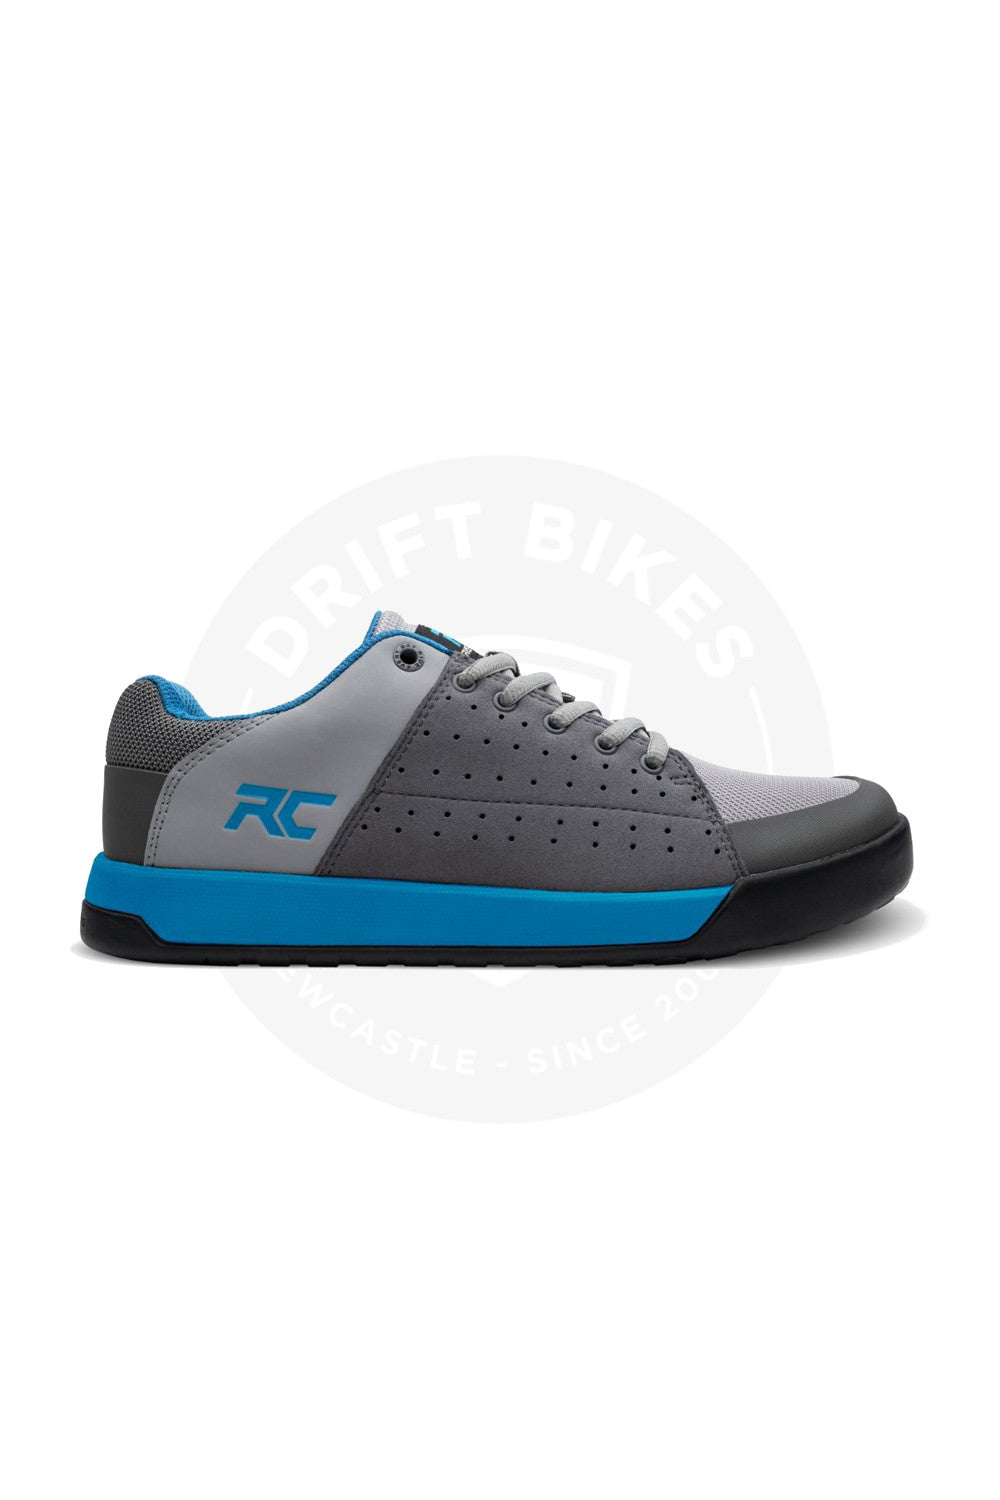 Ride Concepts Livewire Women's Flat Bike Shoe